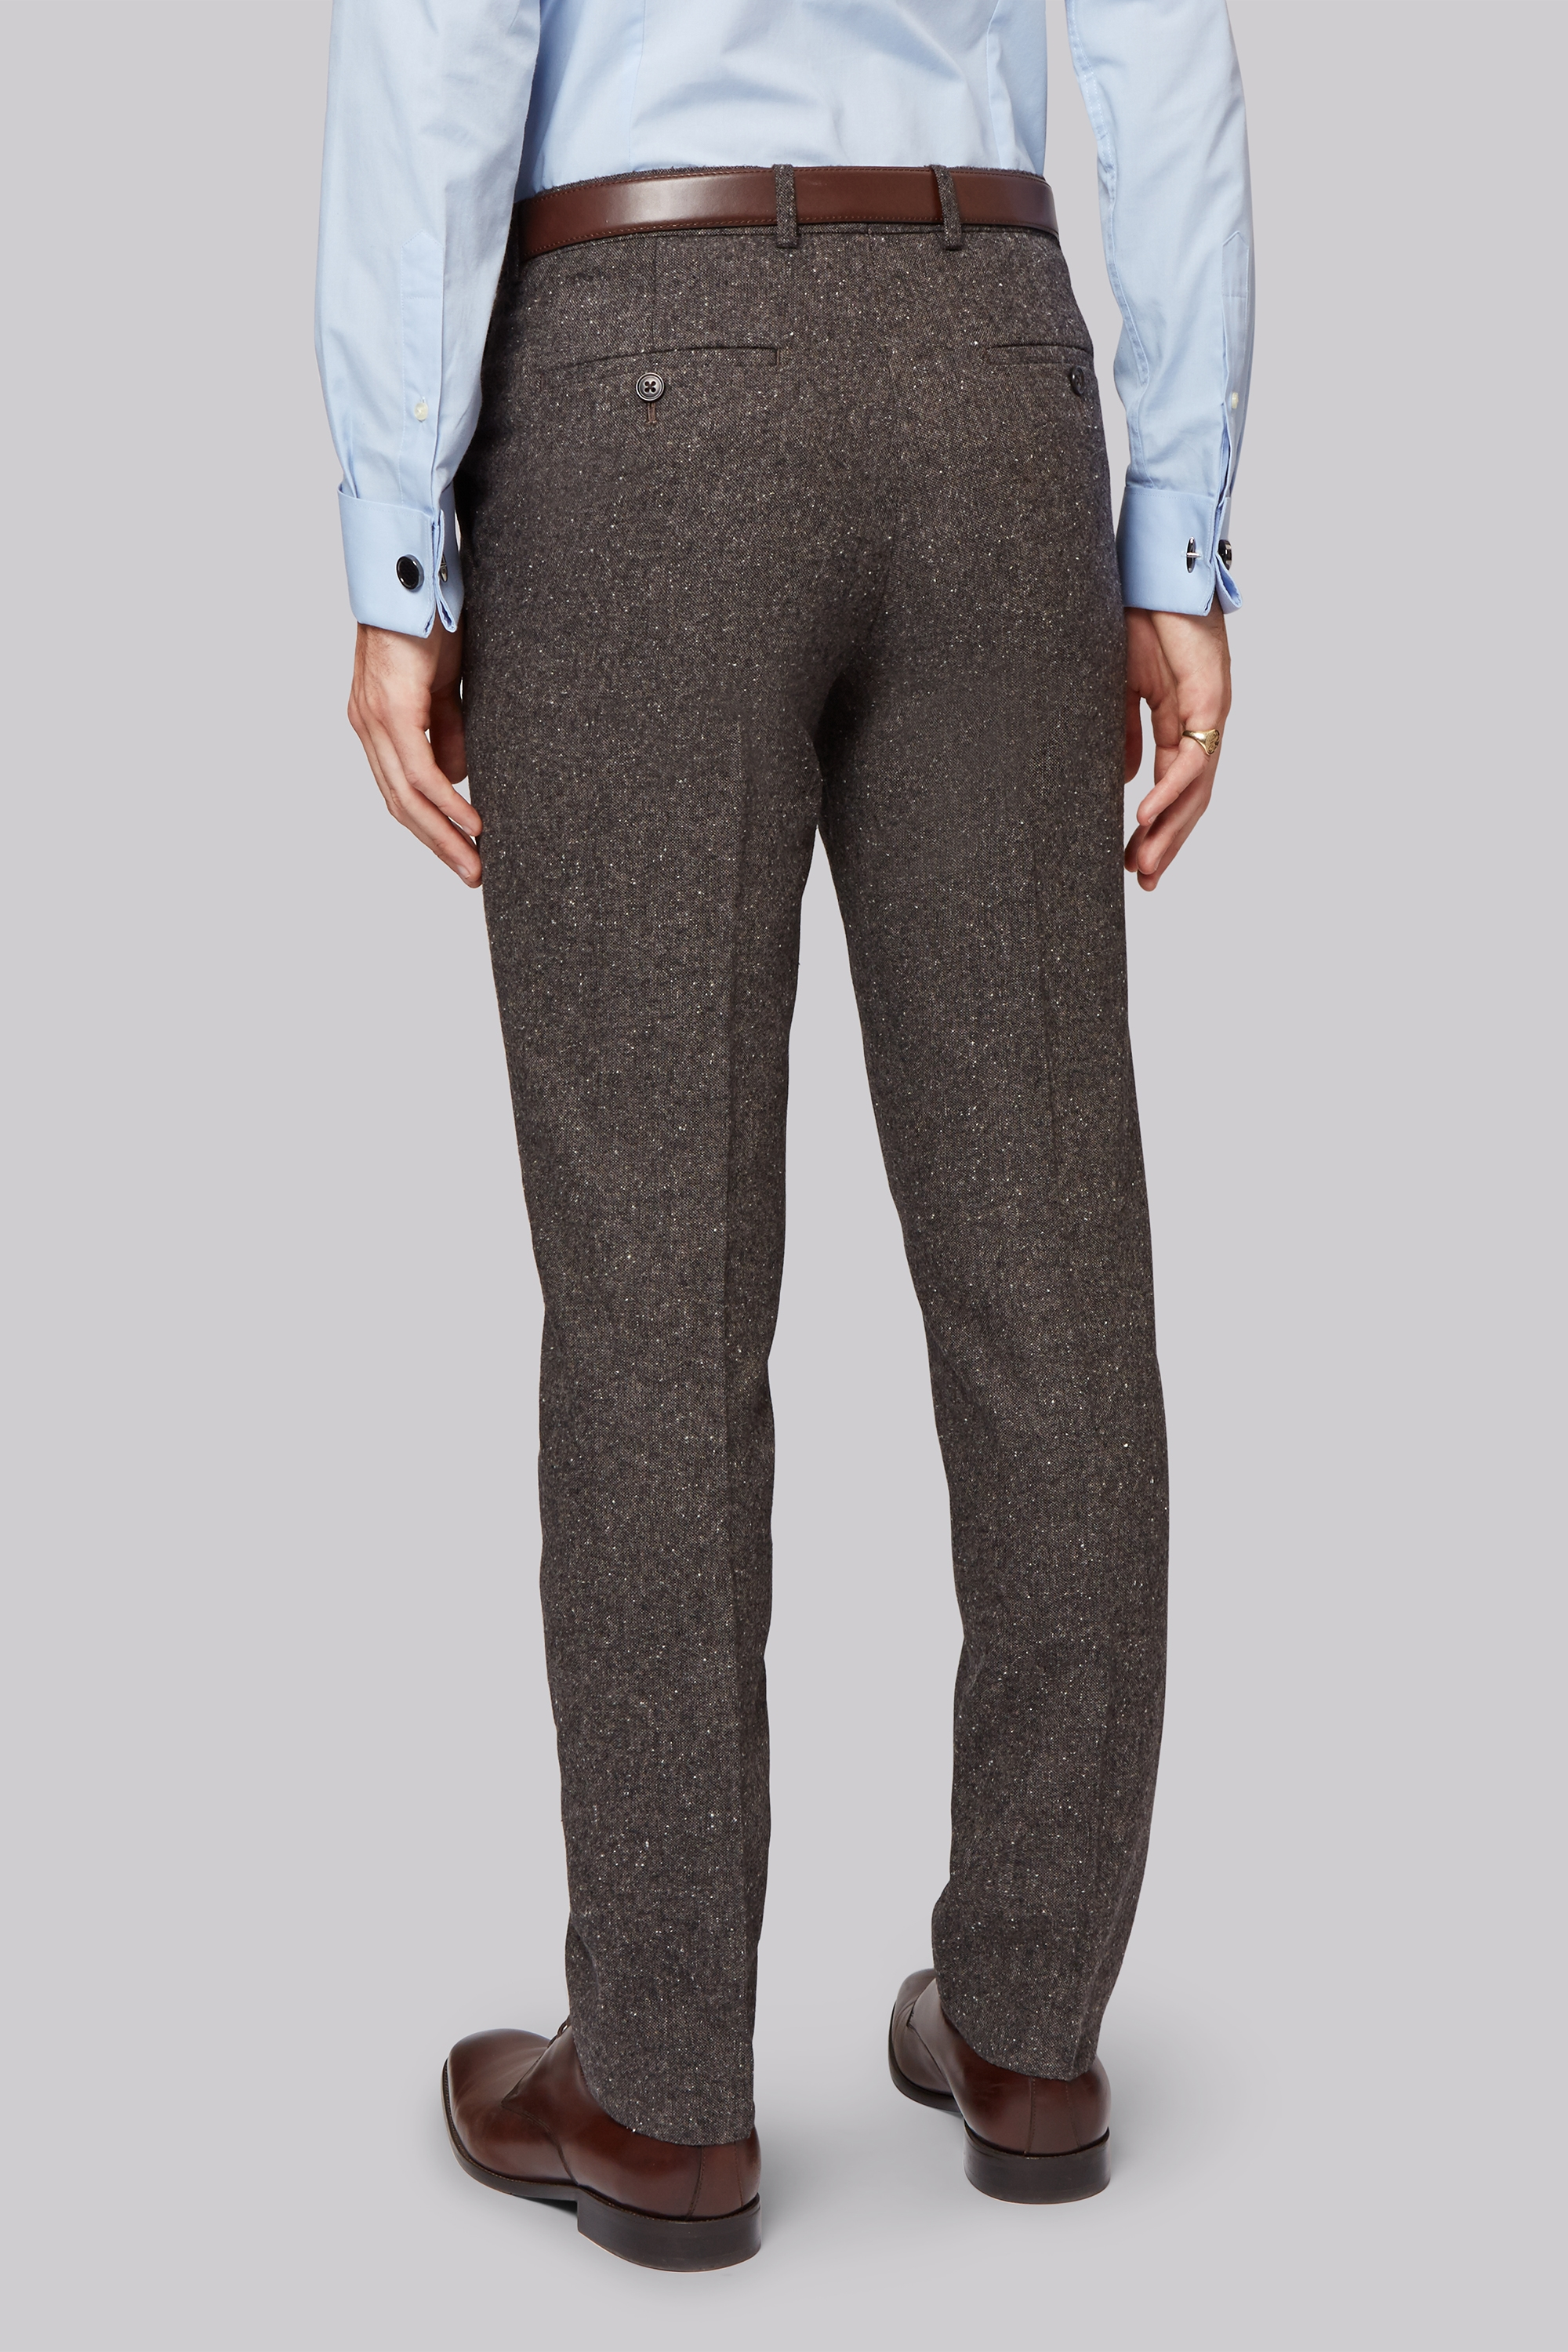 Tweed trousers are definitely a statement piece for your wardrobe and demand that an outfit starts at the legs and develops upwards. You can, of course add the matching waistcoat and jacket or complement with the shirt or jumper of your choice, and if daring, experiment with a contrasting jacket fabric.